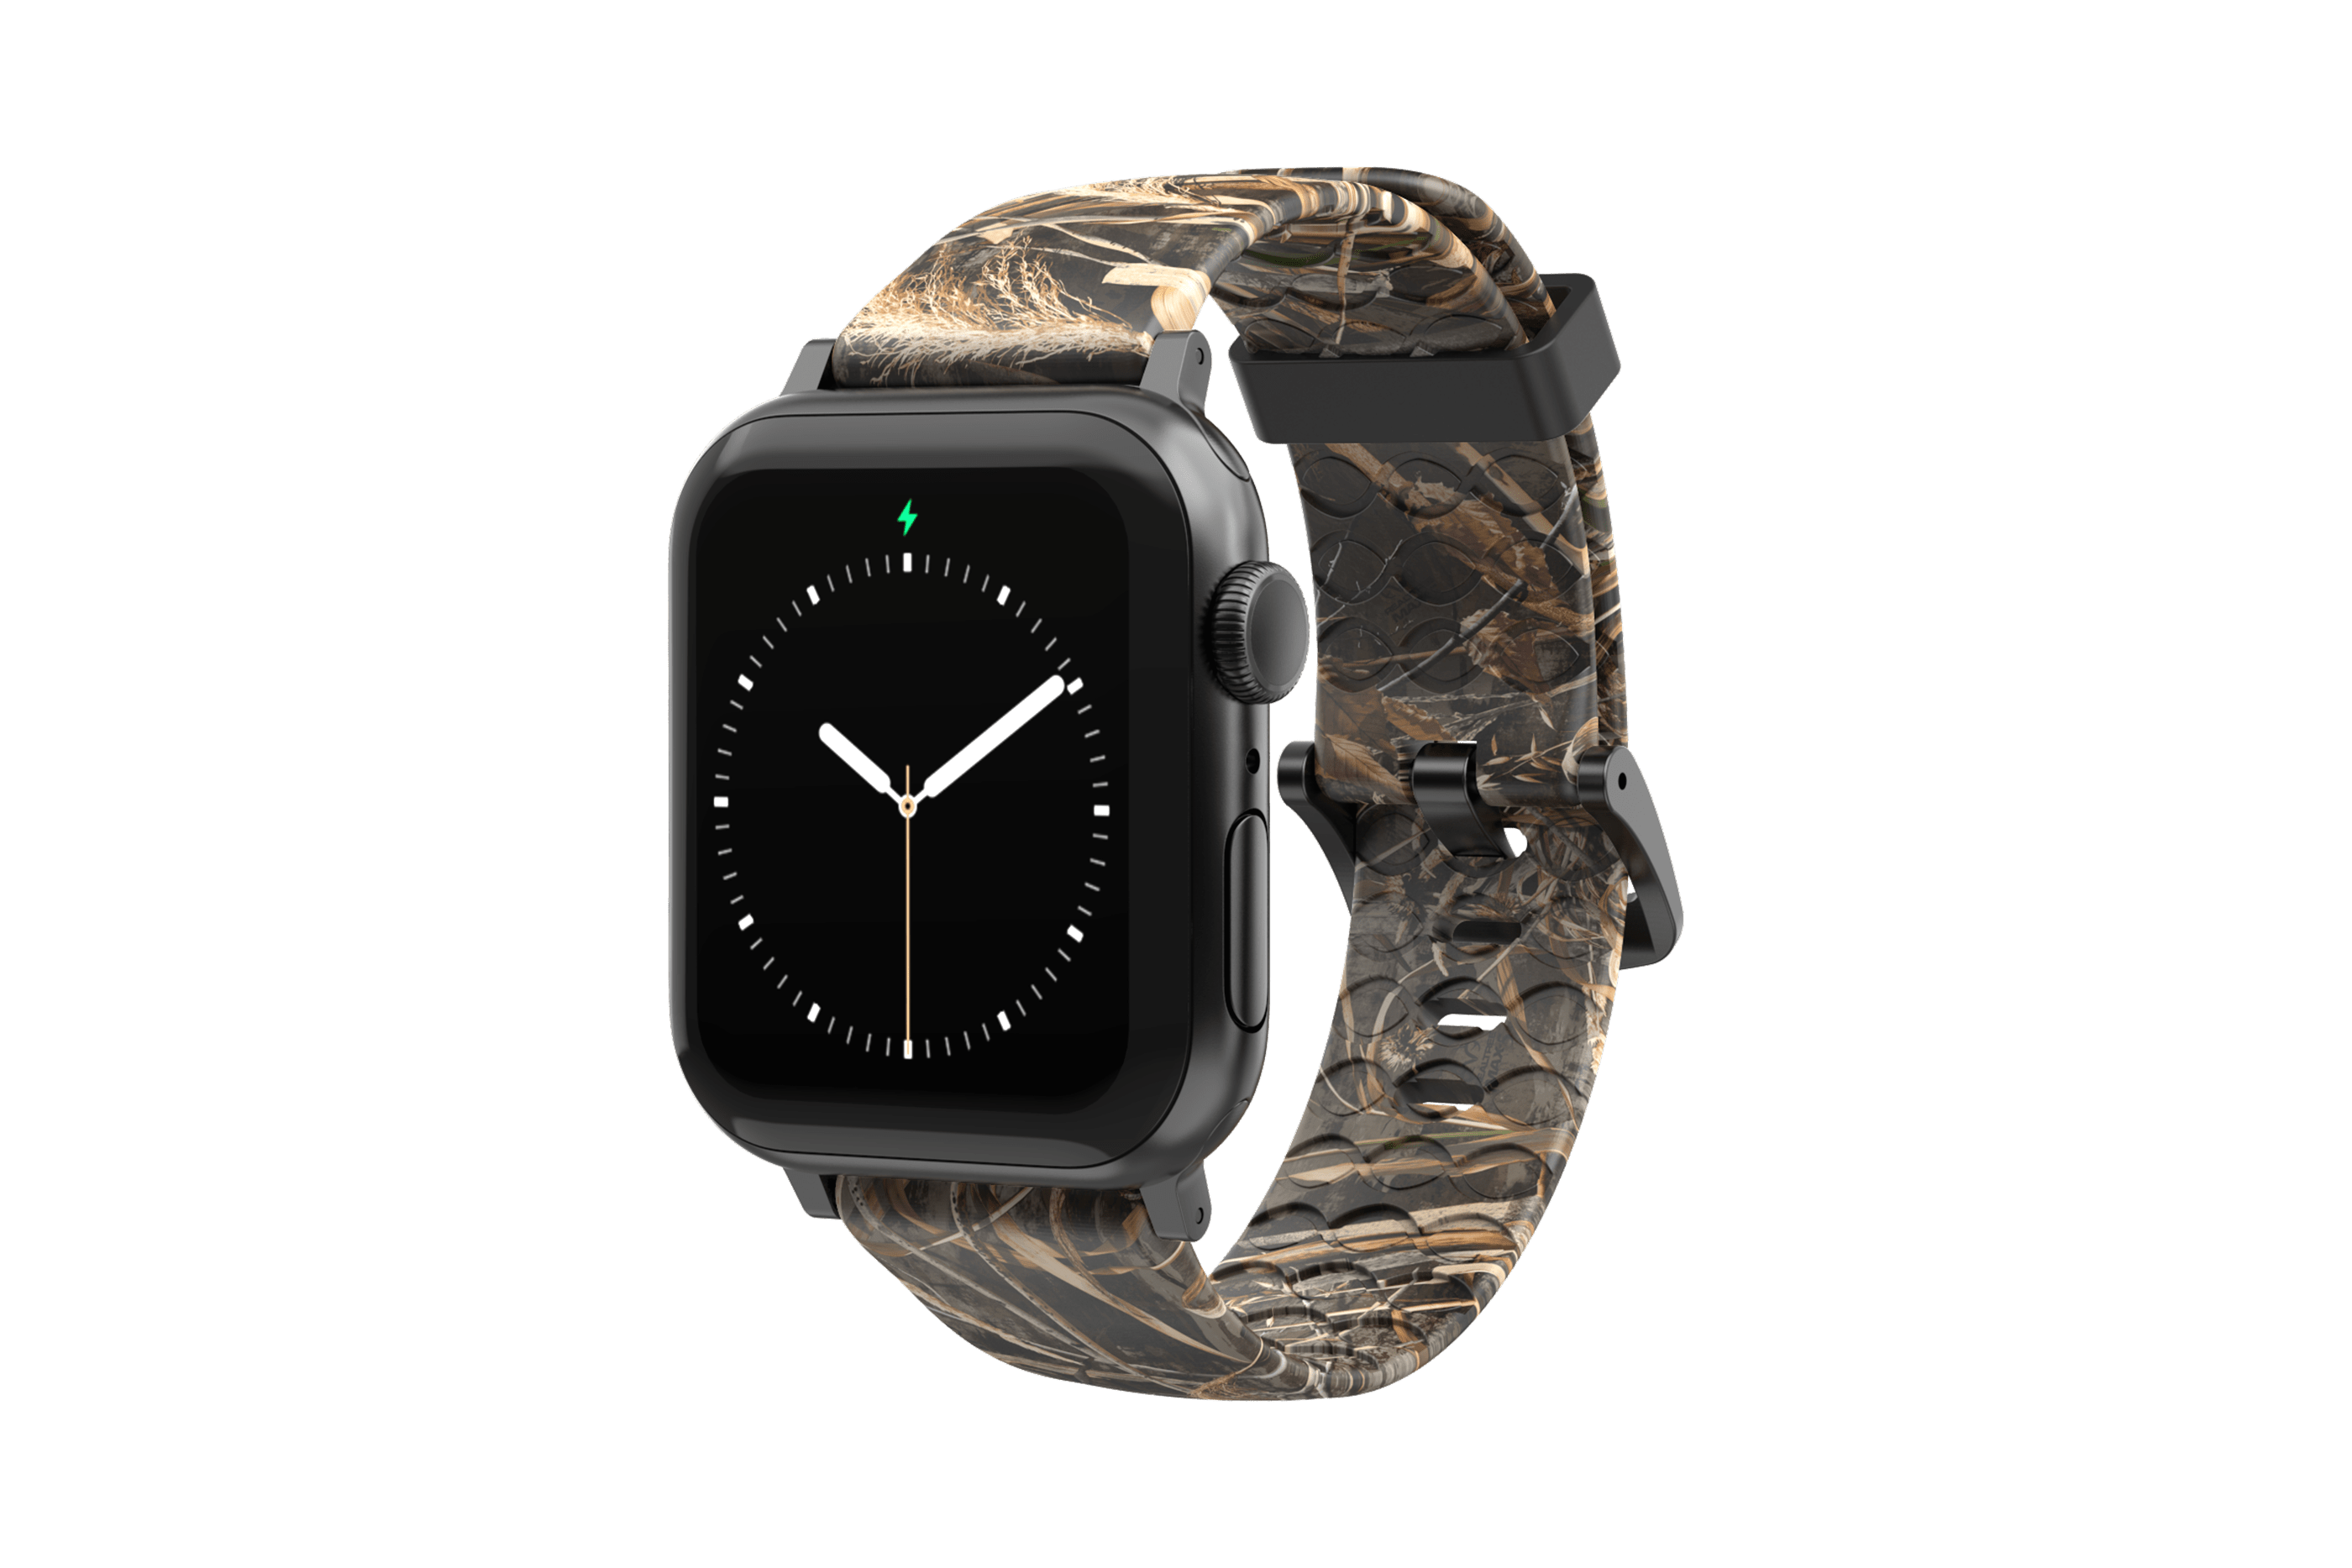 Realtree Max 5 Apple Watch Band with silver hardware viewed front on